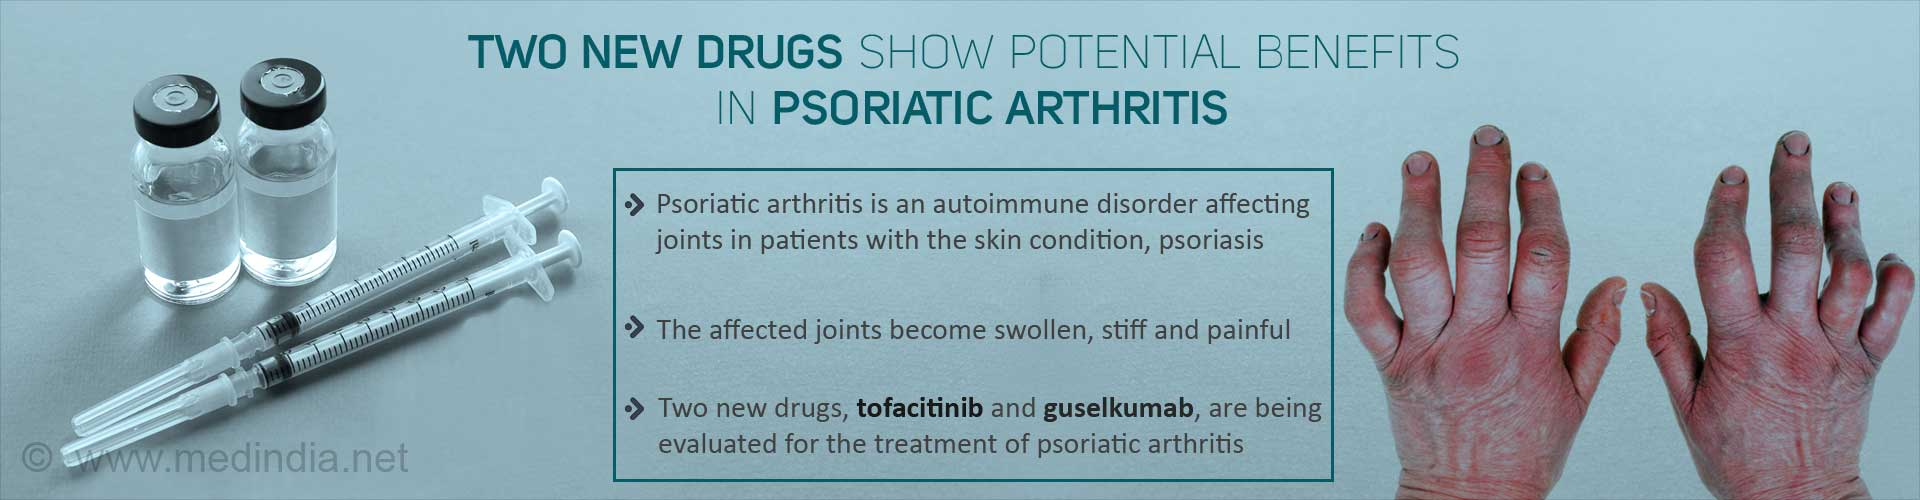 New Drugs Show Potential in Benefiting Psoriatic Arthritis Patients